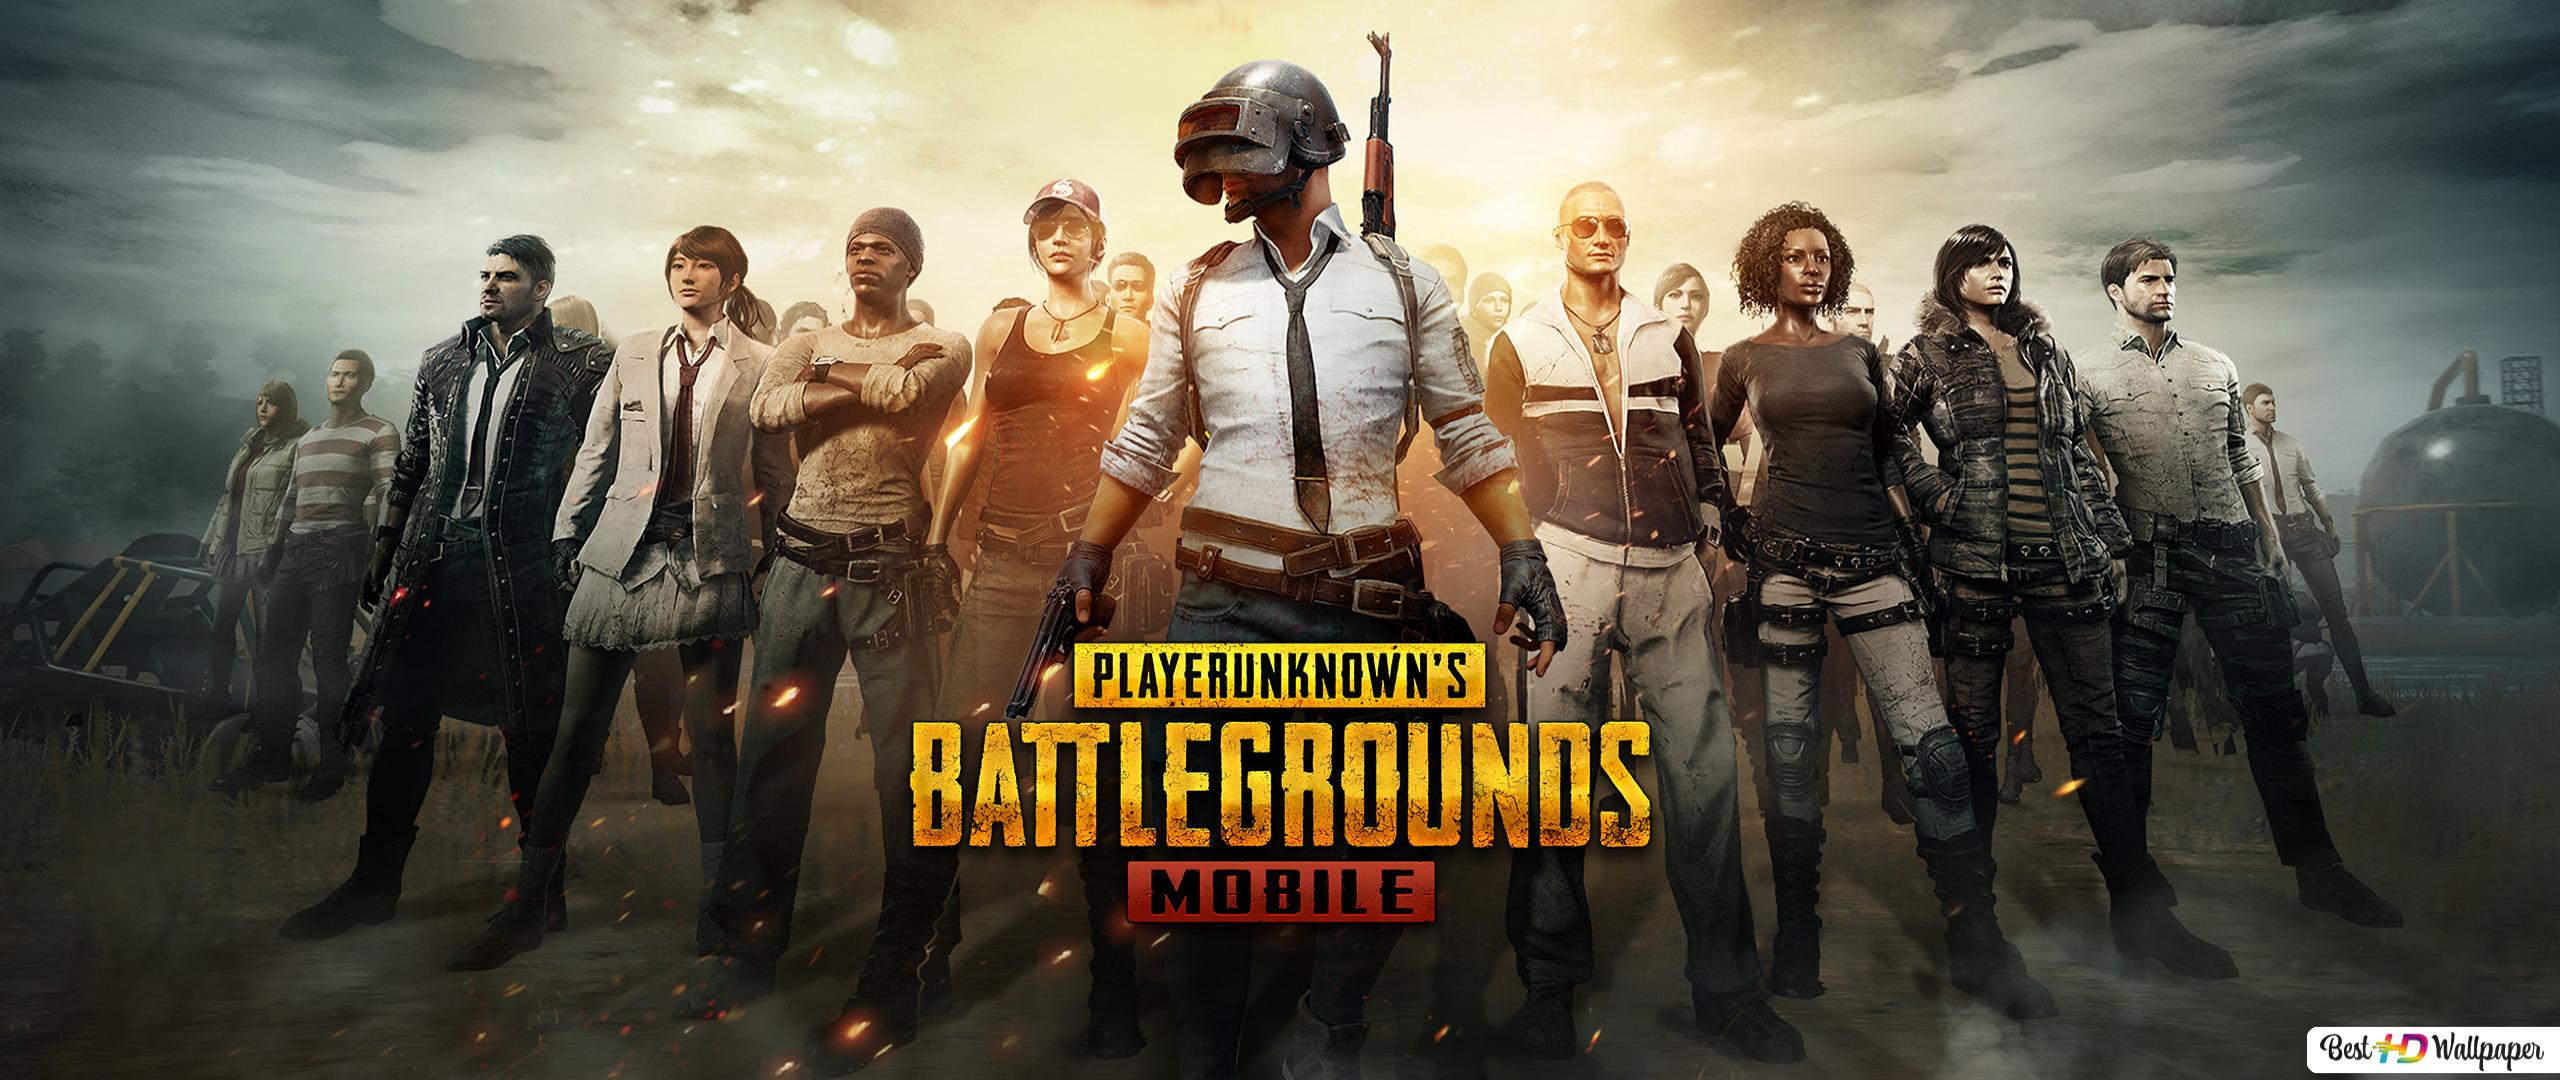 2560x1080 2018 Playerunknowns Battlegrounds 2560x1080: Battlegrounds De PlayerUnknown (PUBG Mobile)